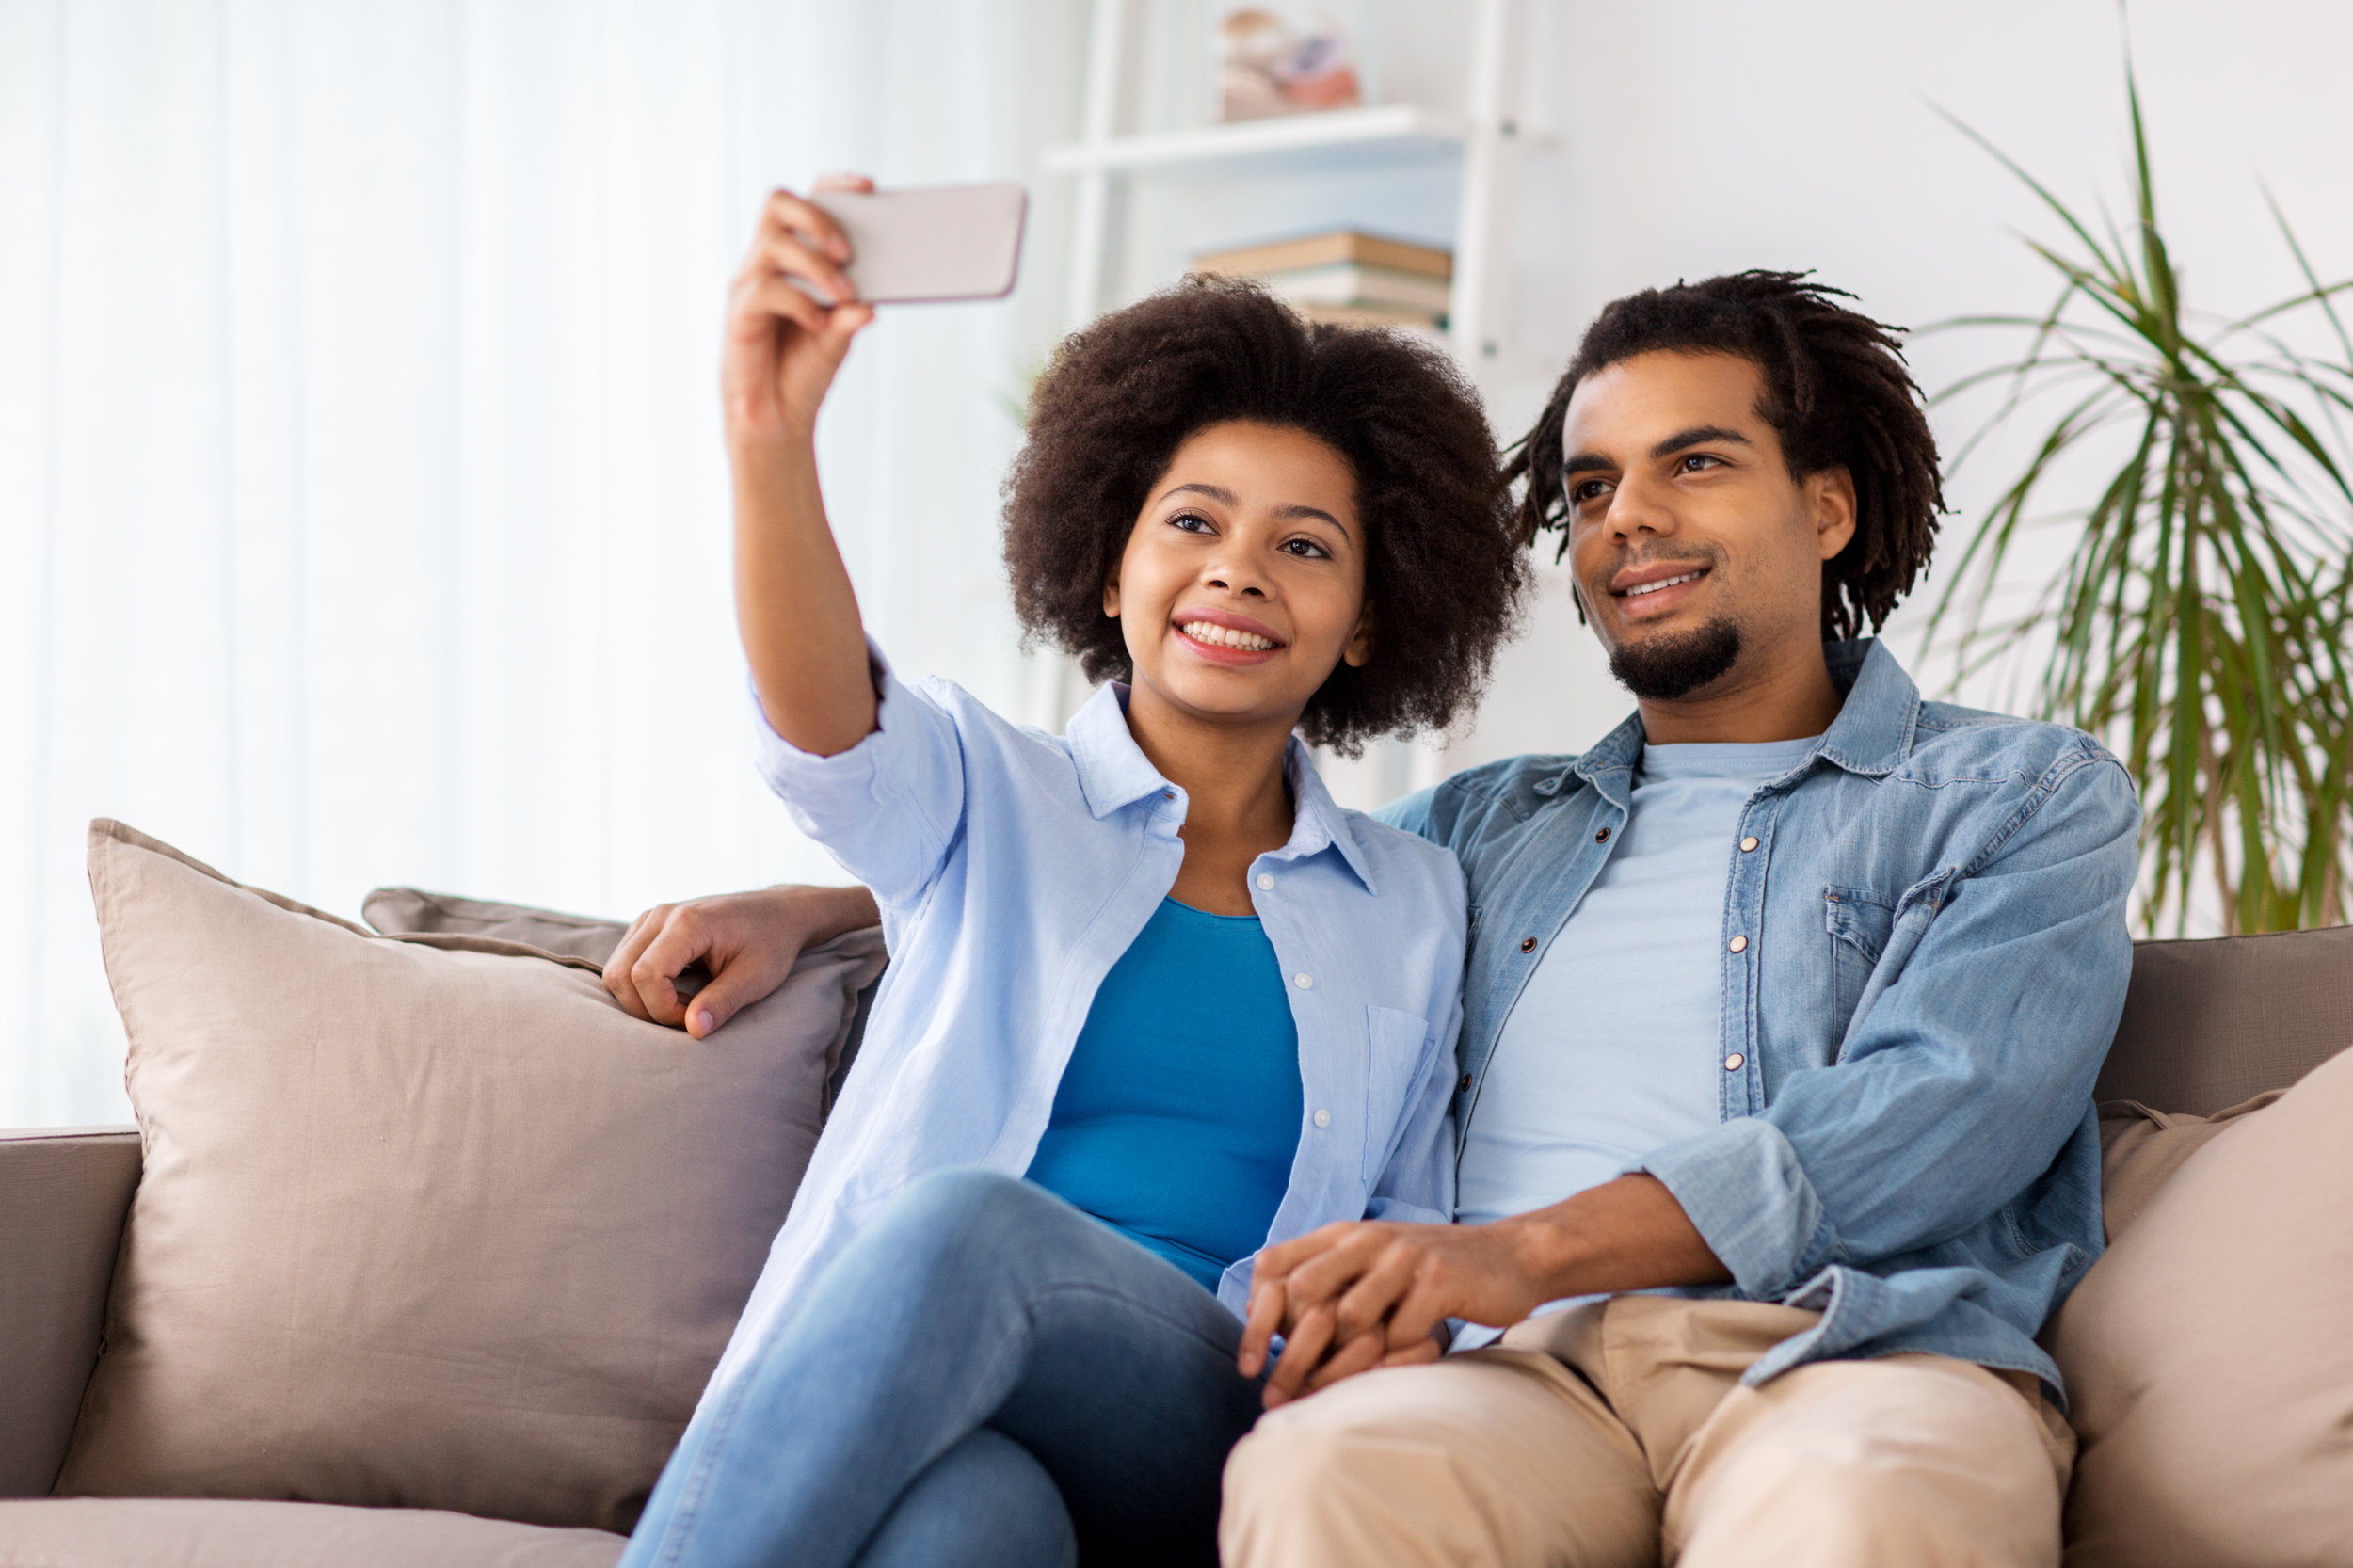 happy-couple-with-smartphone-taking-selfie-at-PYPVV8E.jpg